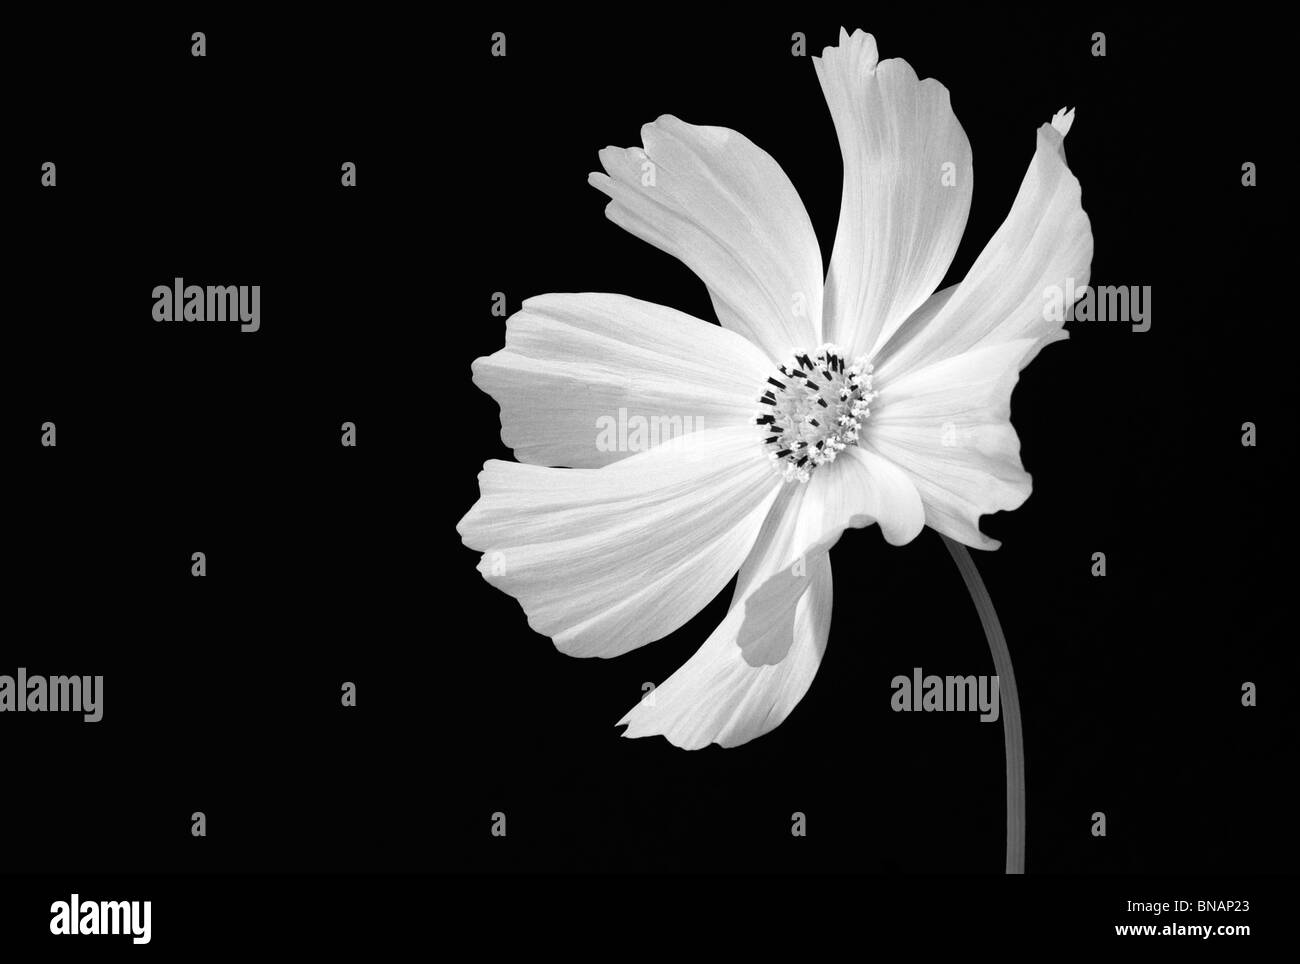 Still Life Black And White Portrait Of A White Cosmos Flower Stock